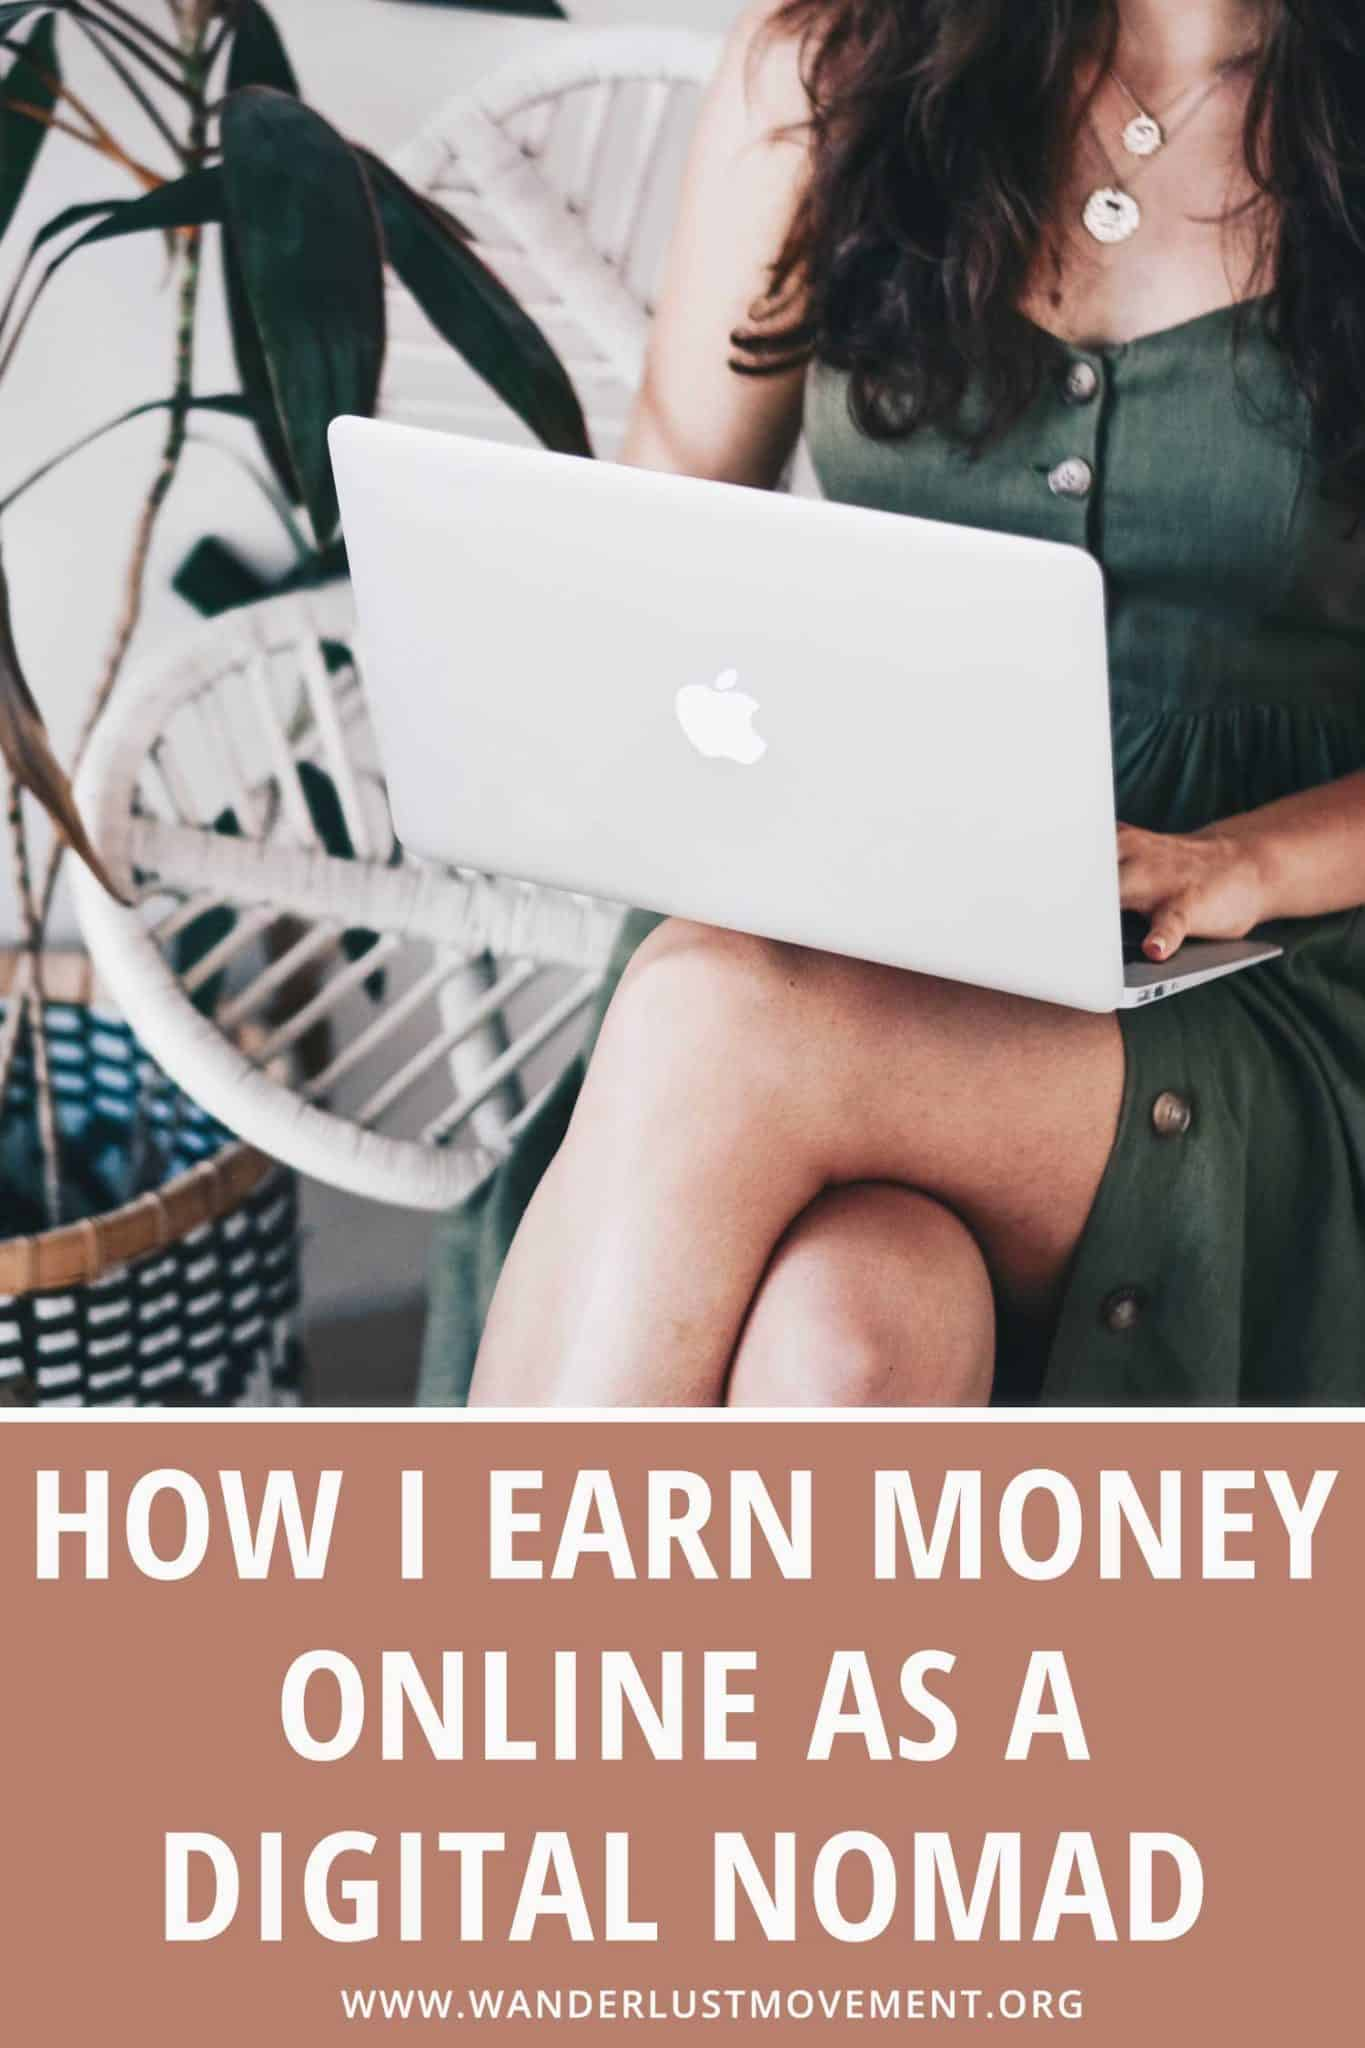 How I Earn Money Online as a Digital Nomad